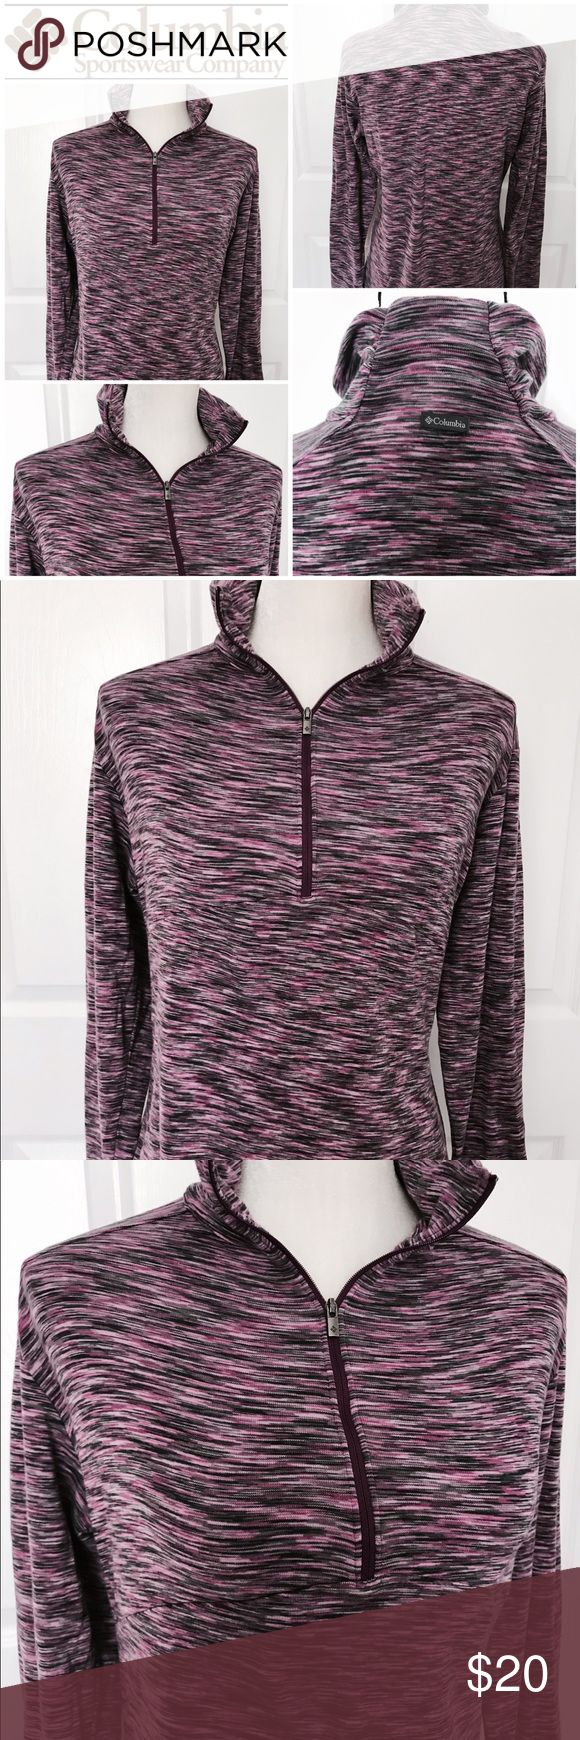 Columbia zip up pullover Columbia Sportswear Company Zip up Pullover. Long sleeve. Perfect for a morning run! Stretchy soft material. The colors are purple, pink, and black stripes. Columbia Sweaters